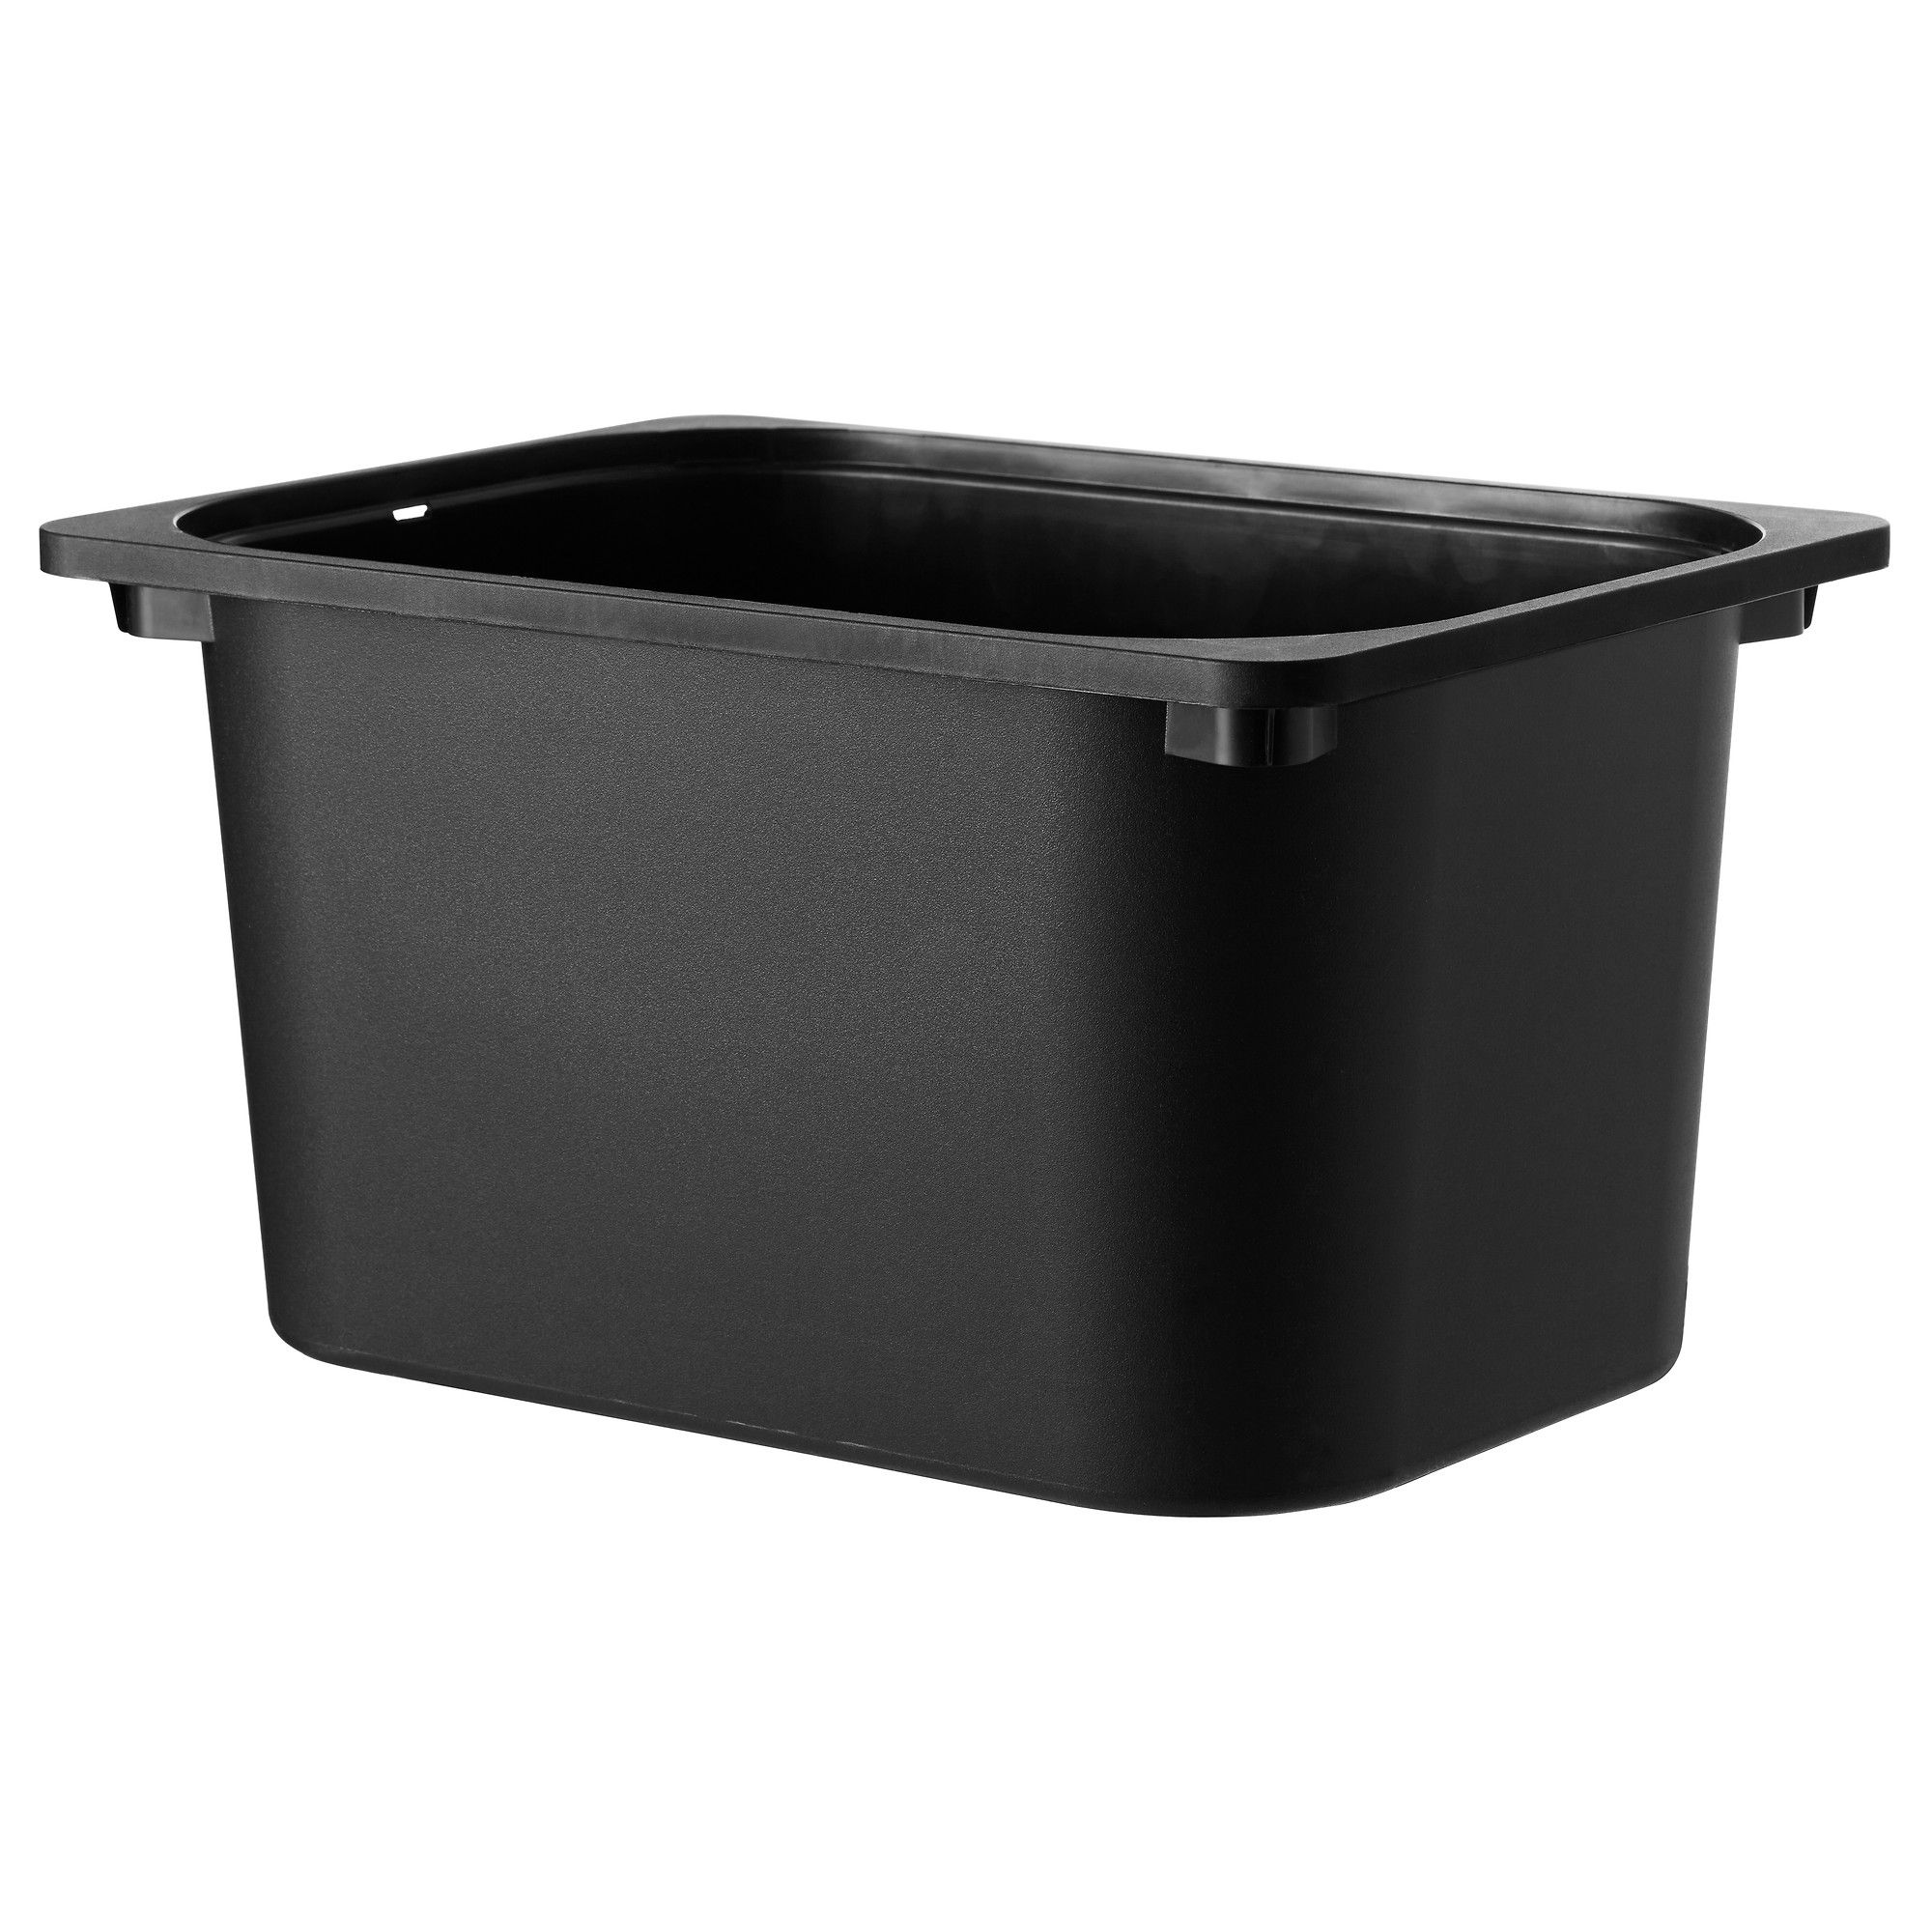 Ikea Trofast Storage Box Black 16 ½x11 ¾x9 Fits In Frames Can Be Stacked When Completed With A Lid